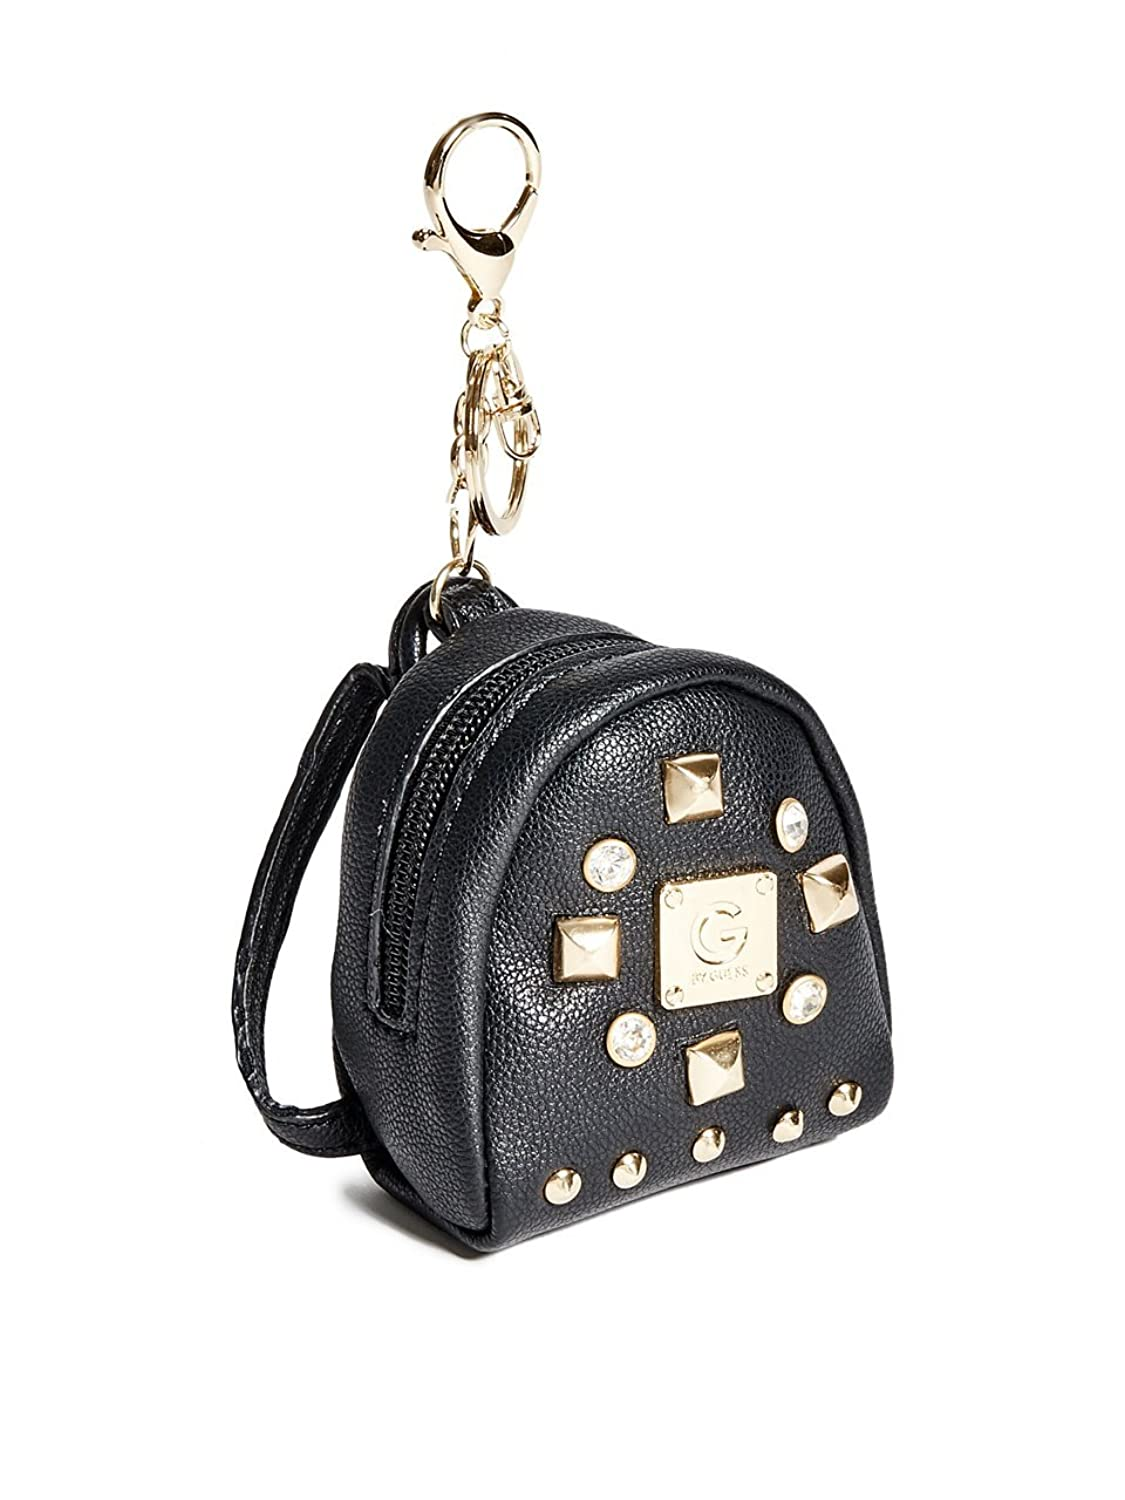 G by GUESS Women's GBG Studded Backpack Keychain